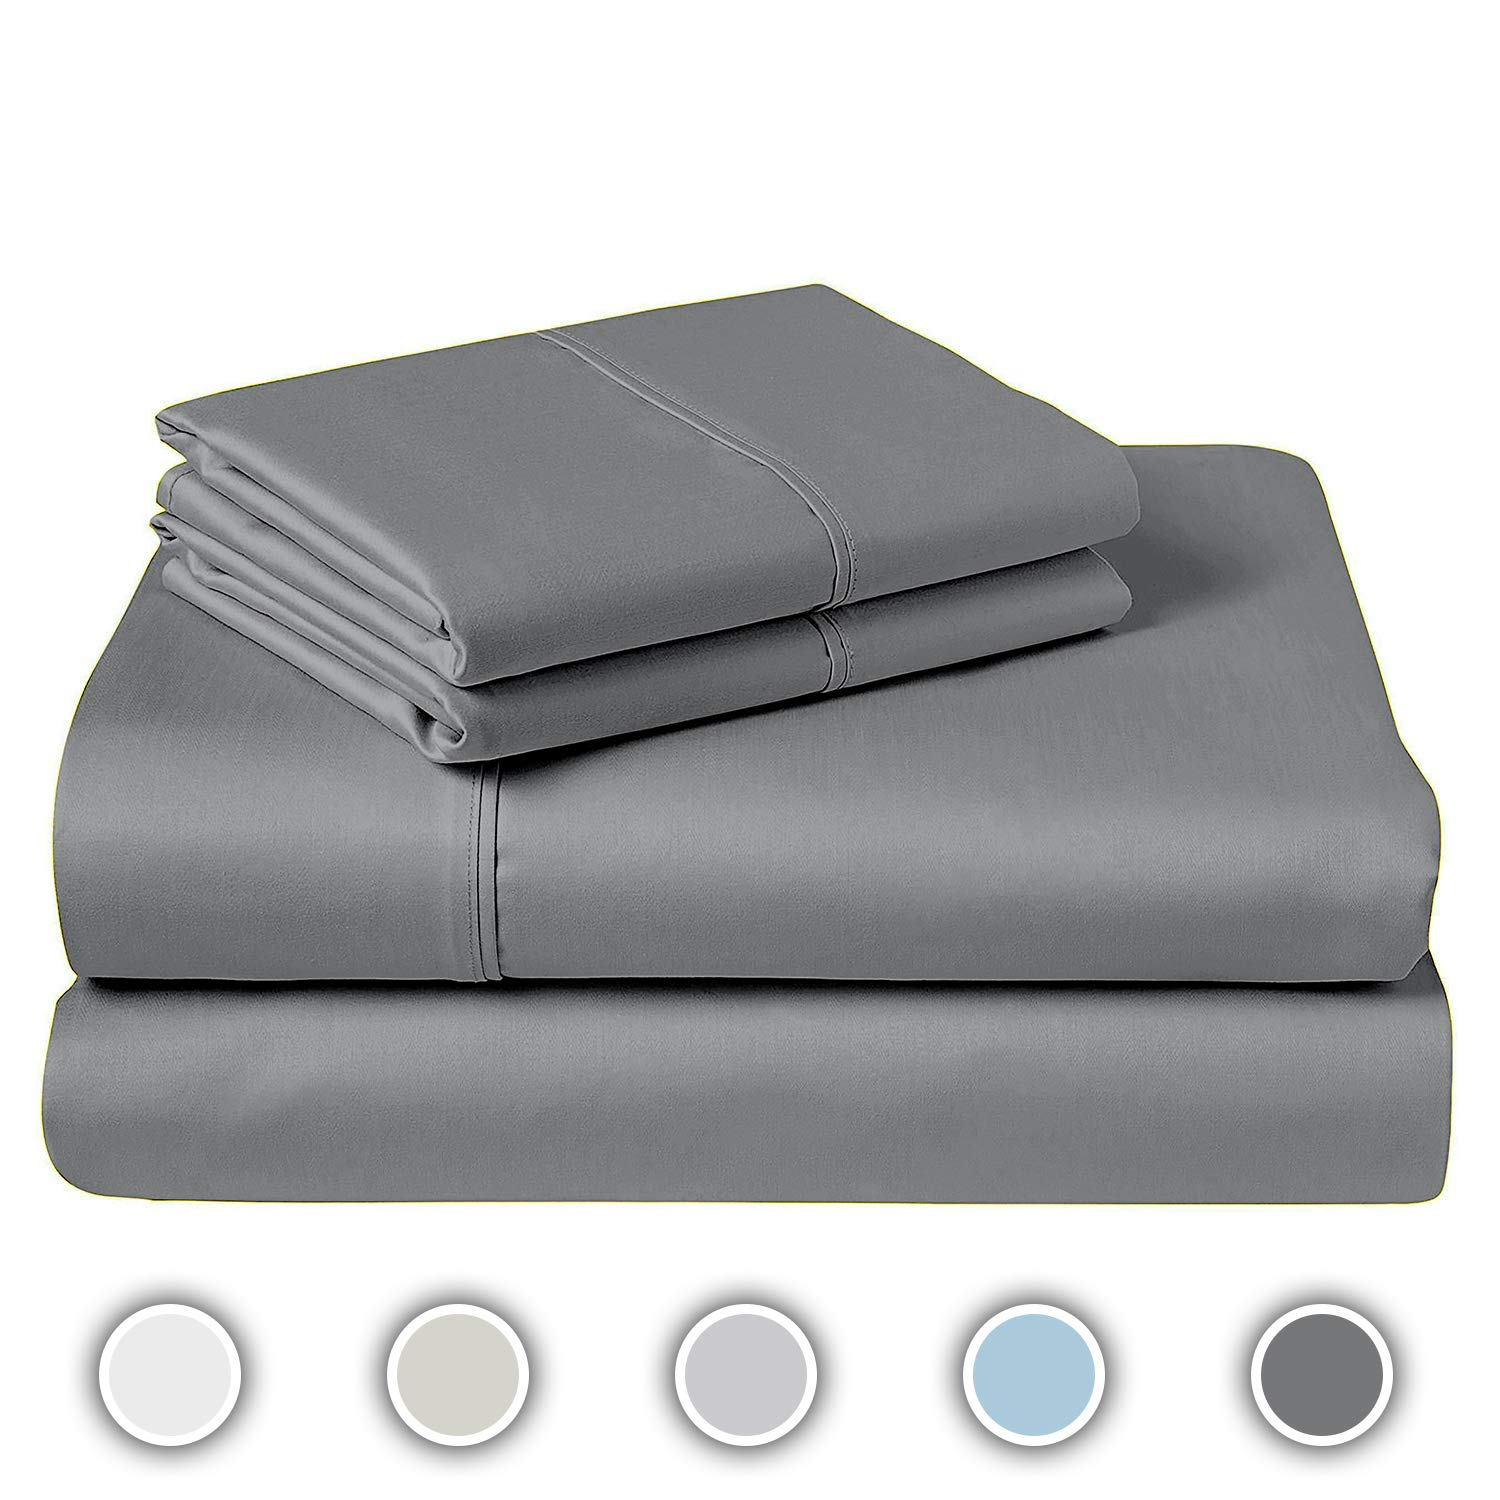 COZERI 600 Thread Count Luxury Sheet Set, 100% Cotton, Breathable, Soft & Silky Sateen Weave, Fits Mattress Upto 17'' Deep Pocket, 4 Piece Bed Sheets Set - (King, Dark Gray) by COZERI